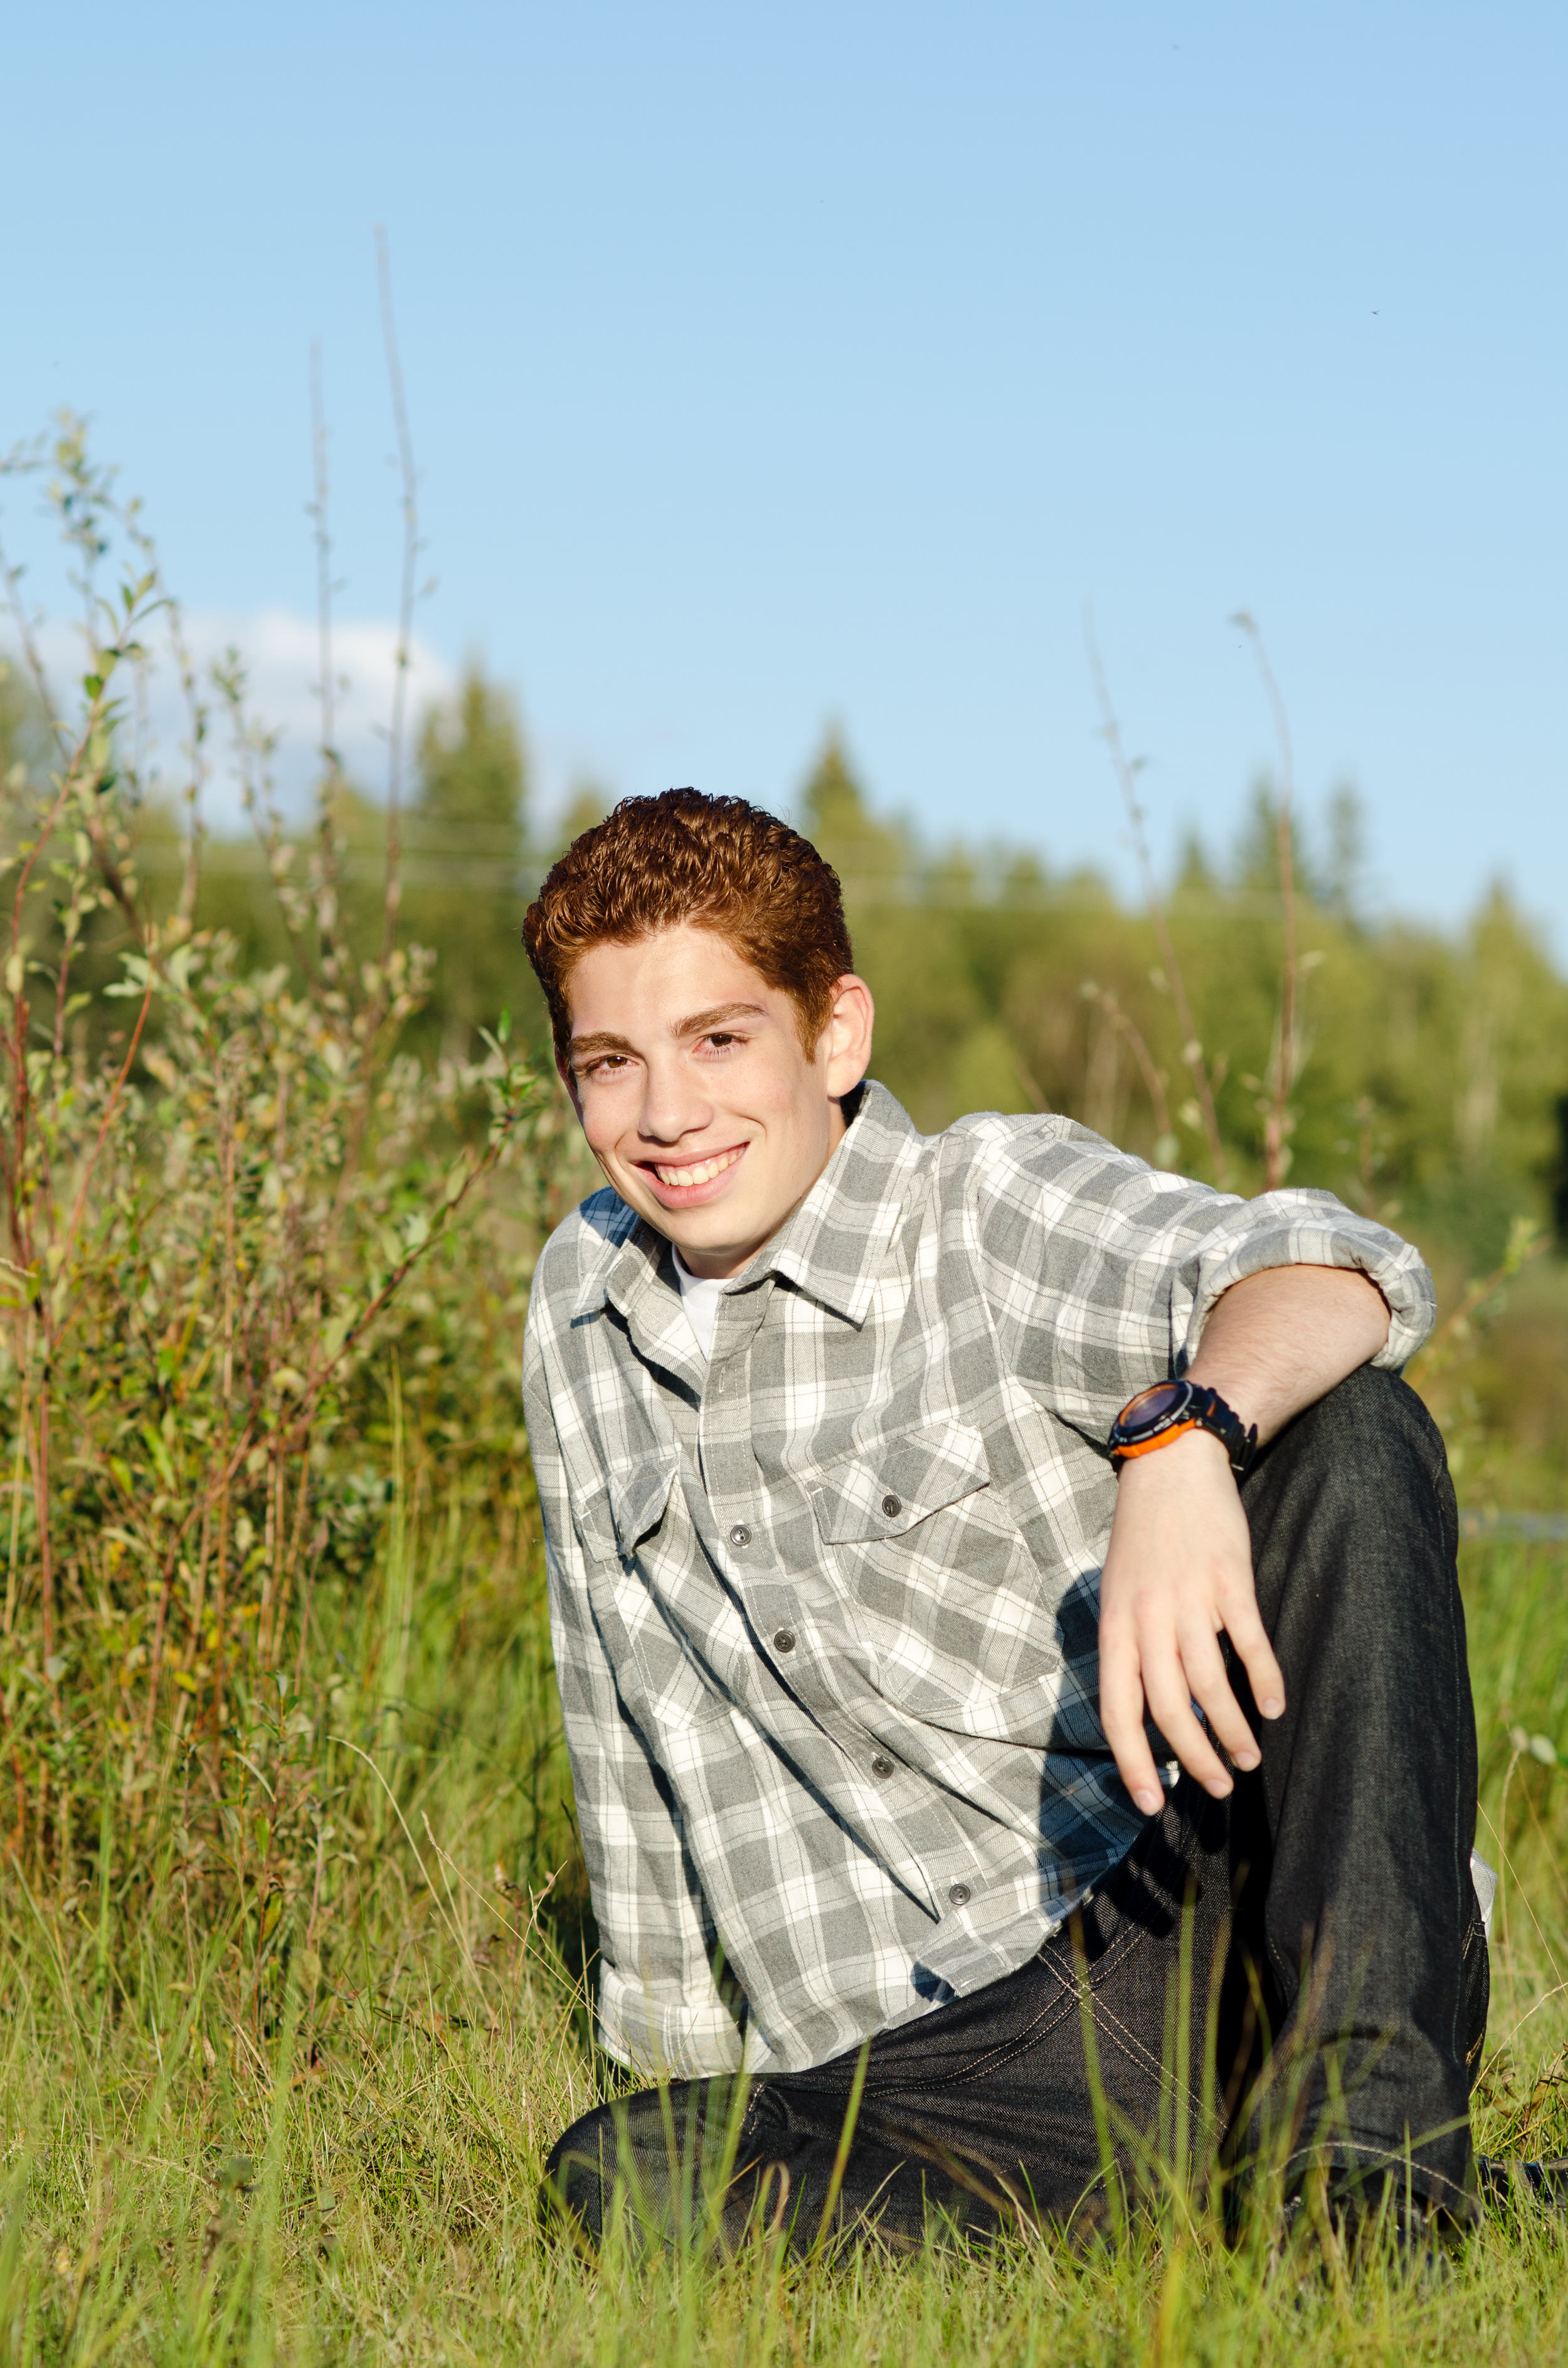 fairbanks, ak senior photos photographer